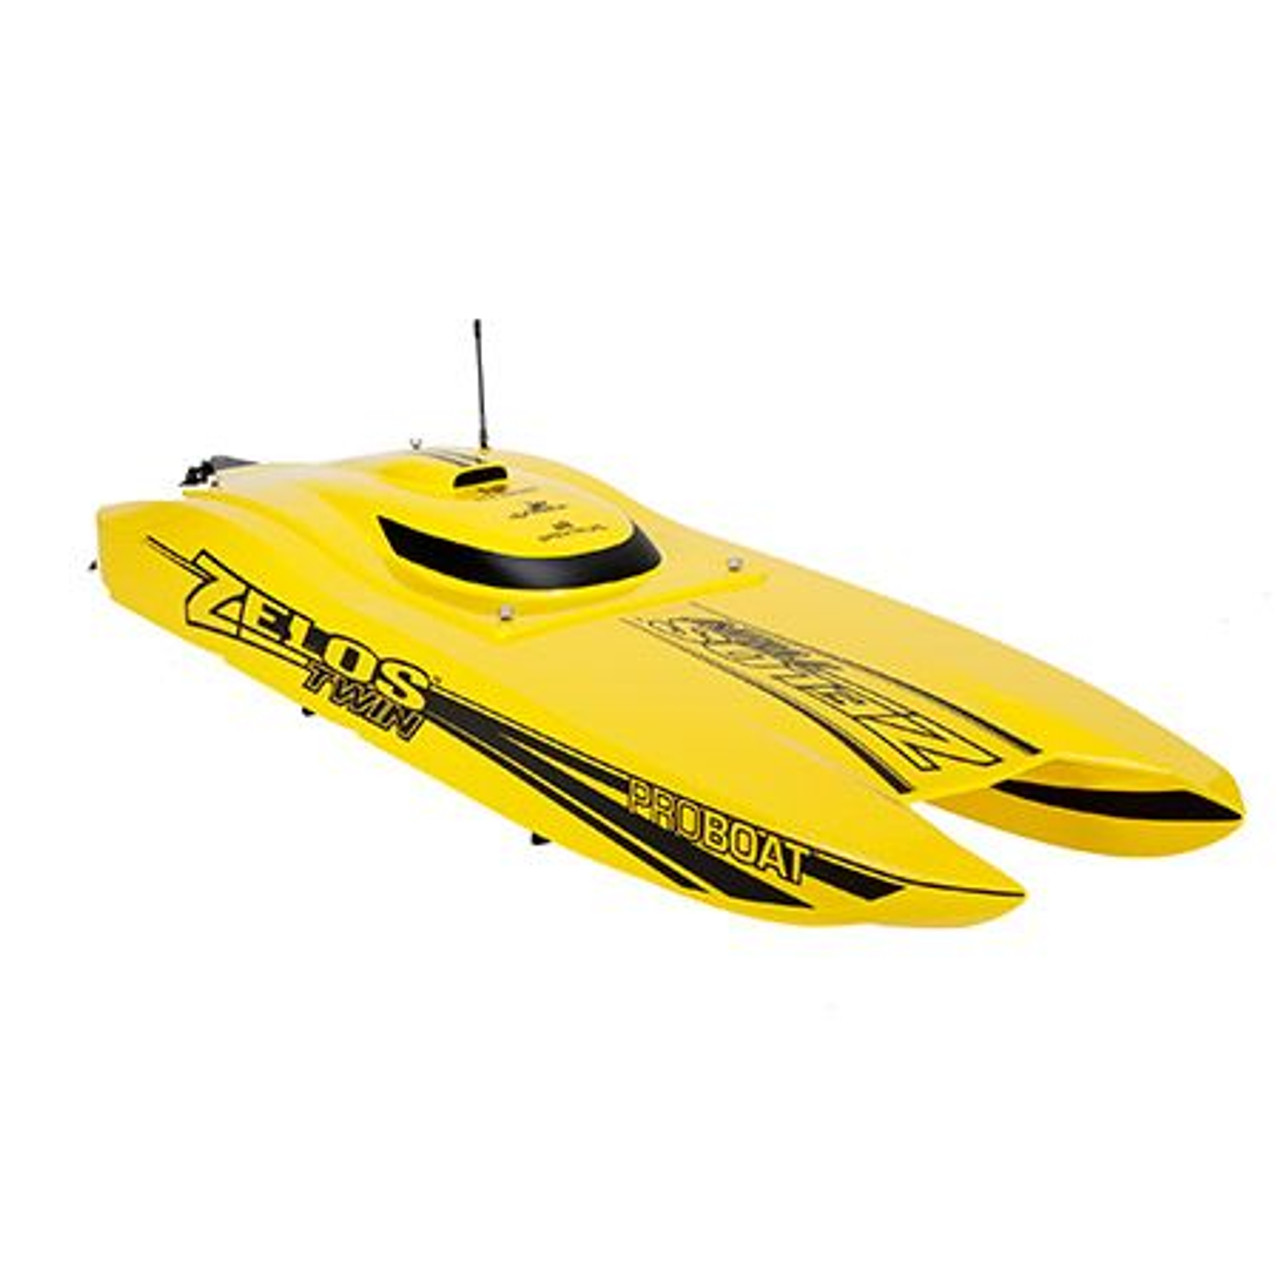 "Proboat Zelos 36"" Twin Brushless Catamaran RTR"